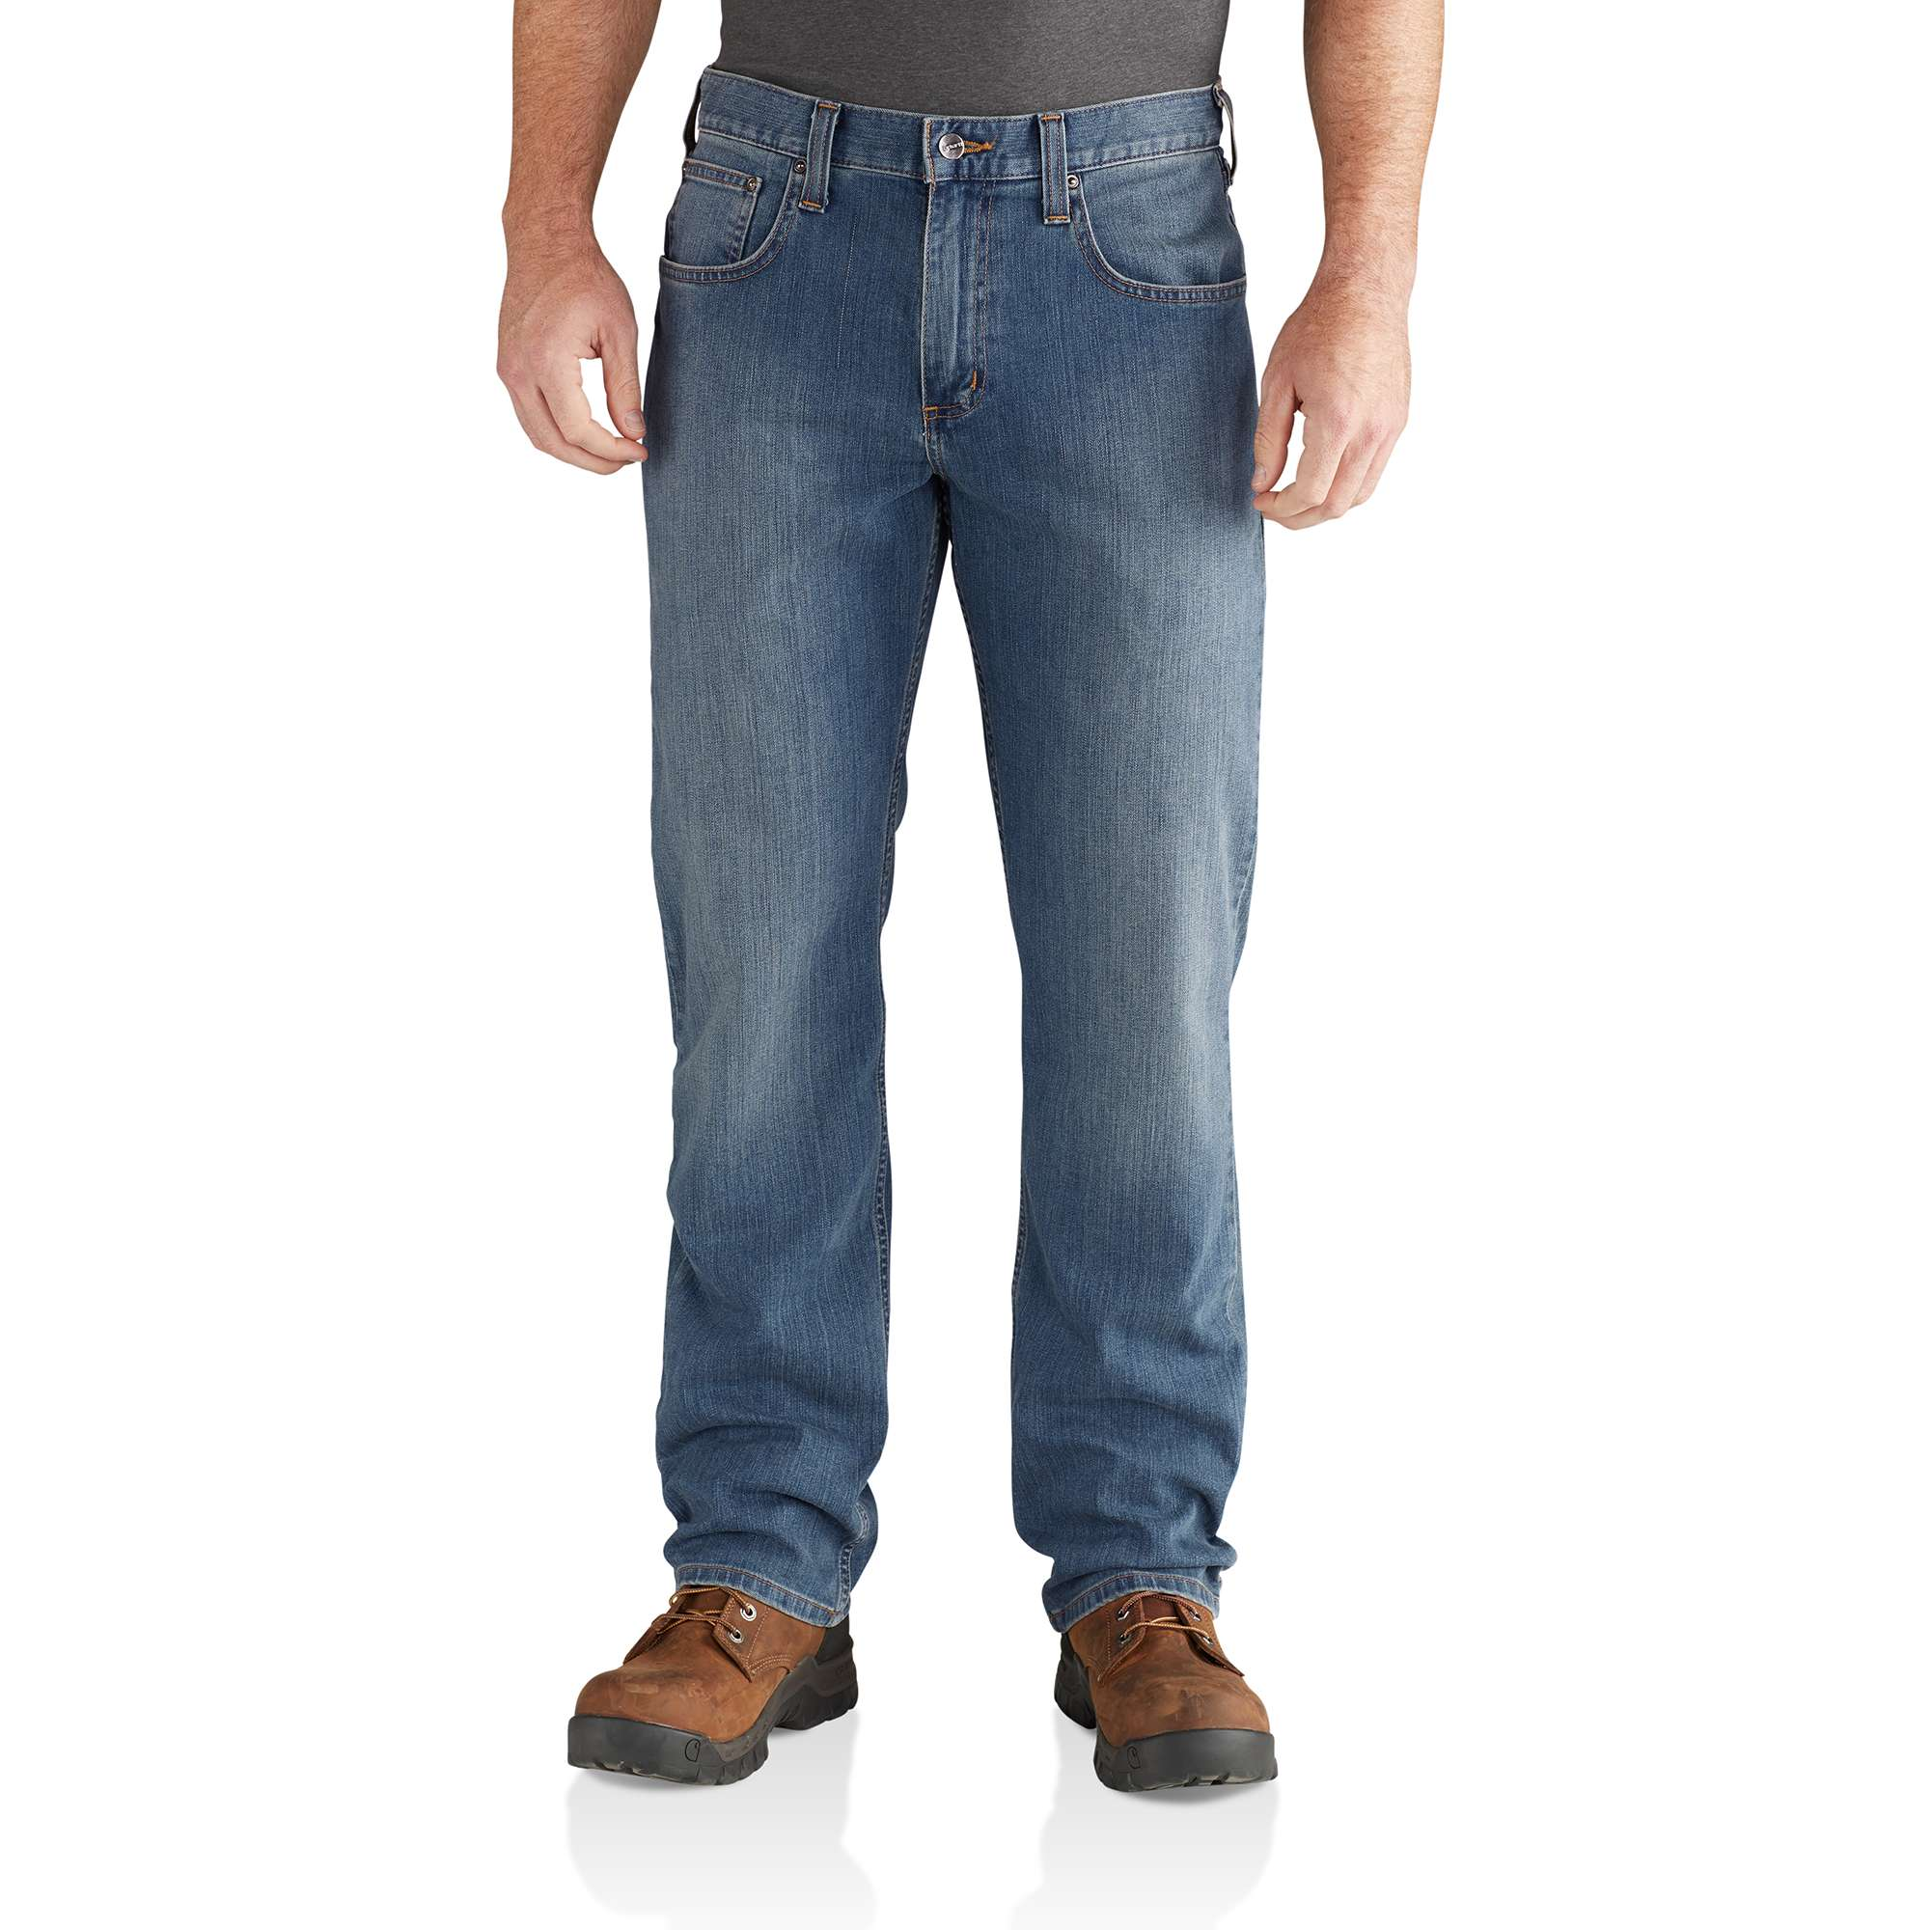 Men's Rugged Flex ® Relaxed Fit Jeans